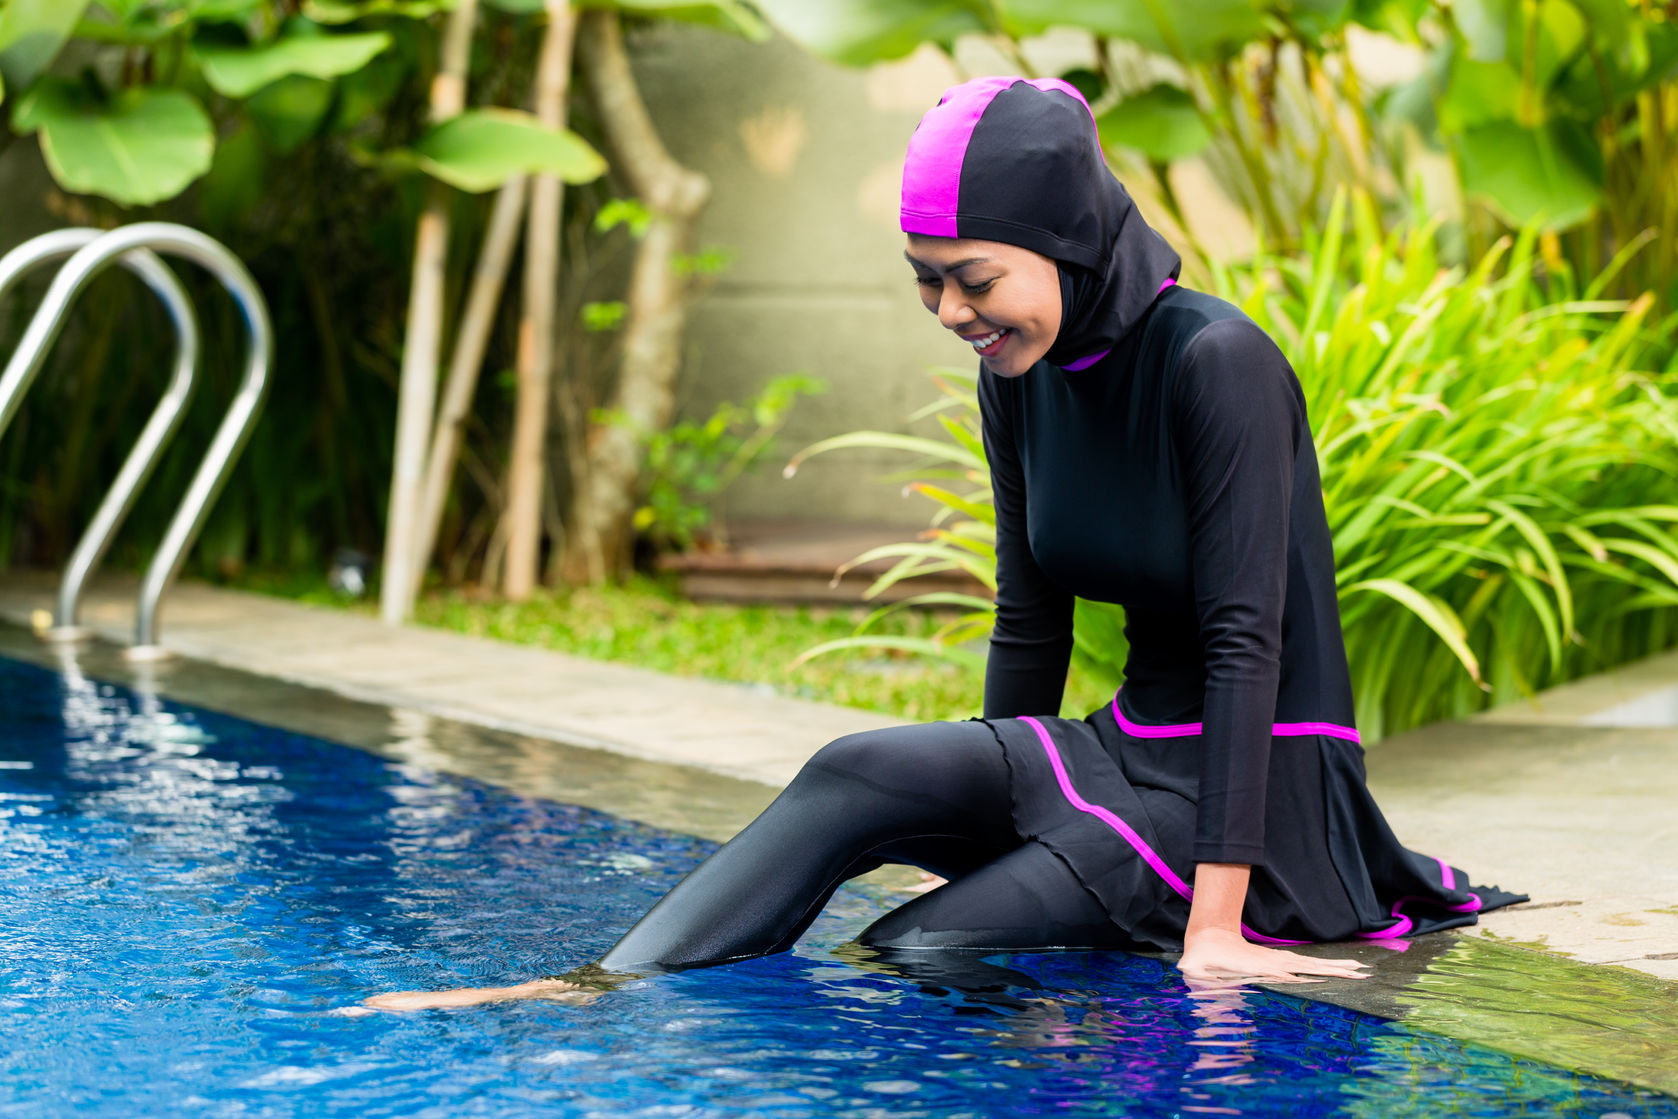 Why france s burkini bans should enrage us all ladyclever for Female only swimming pool london